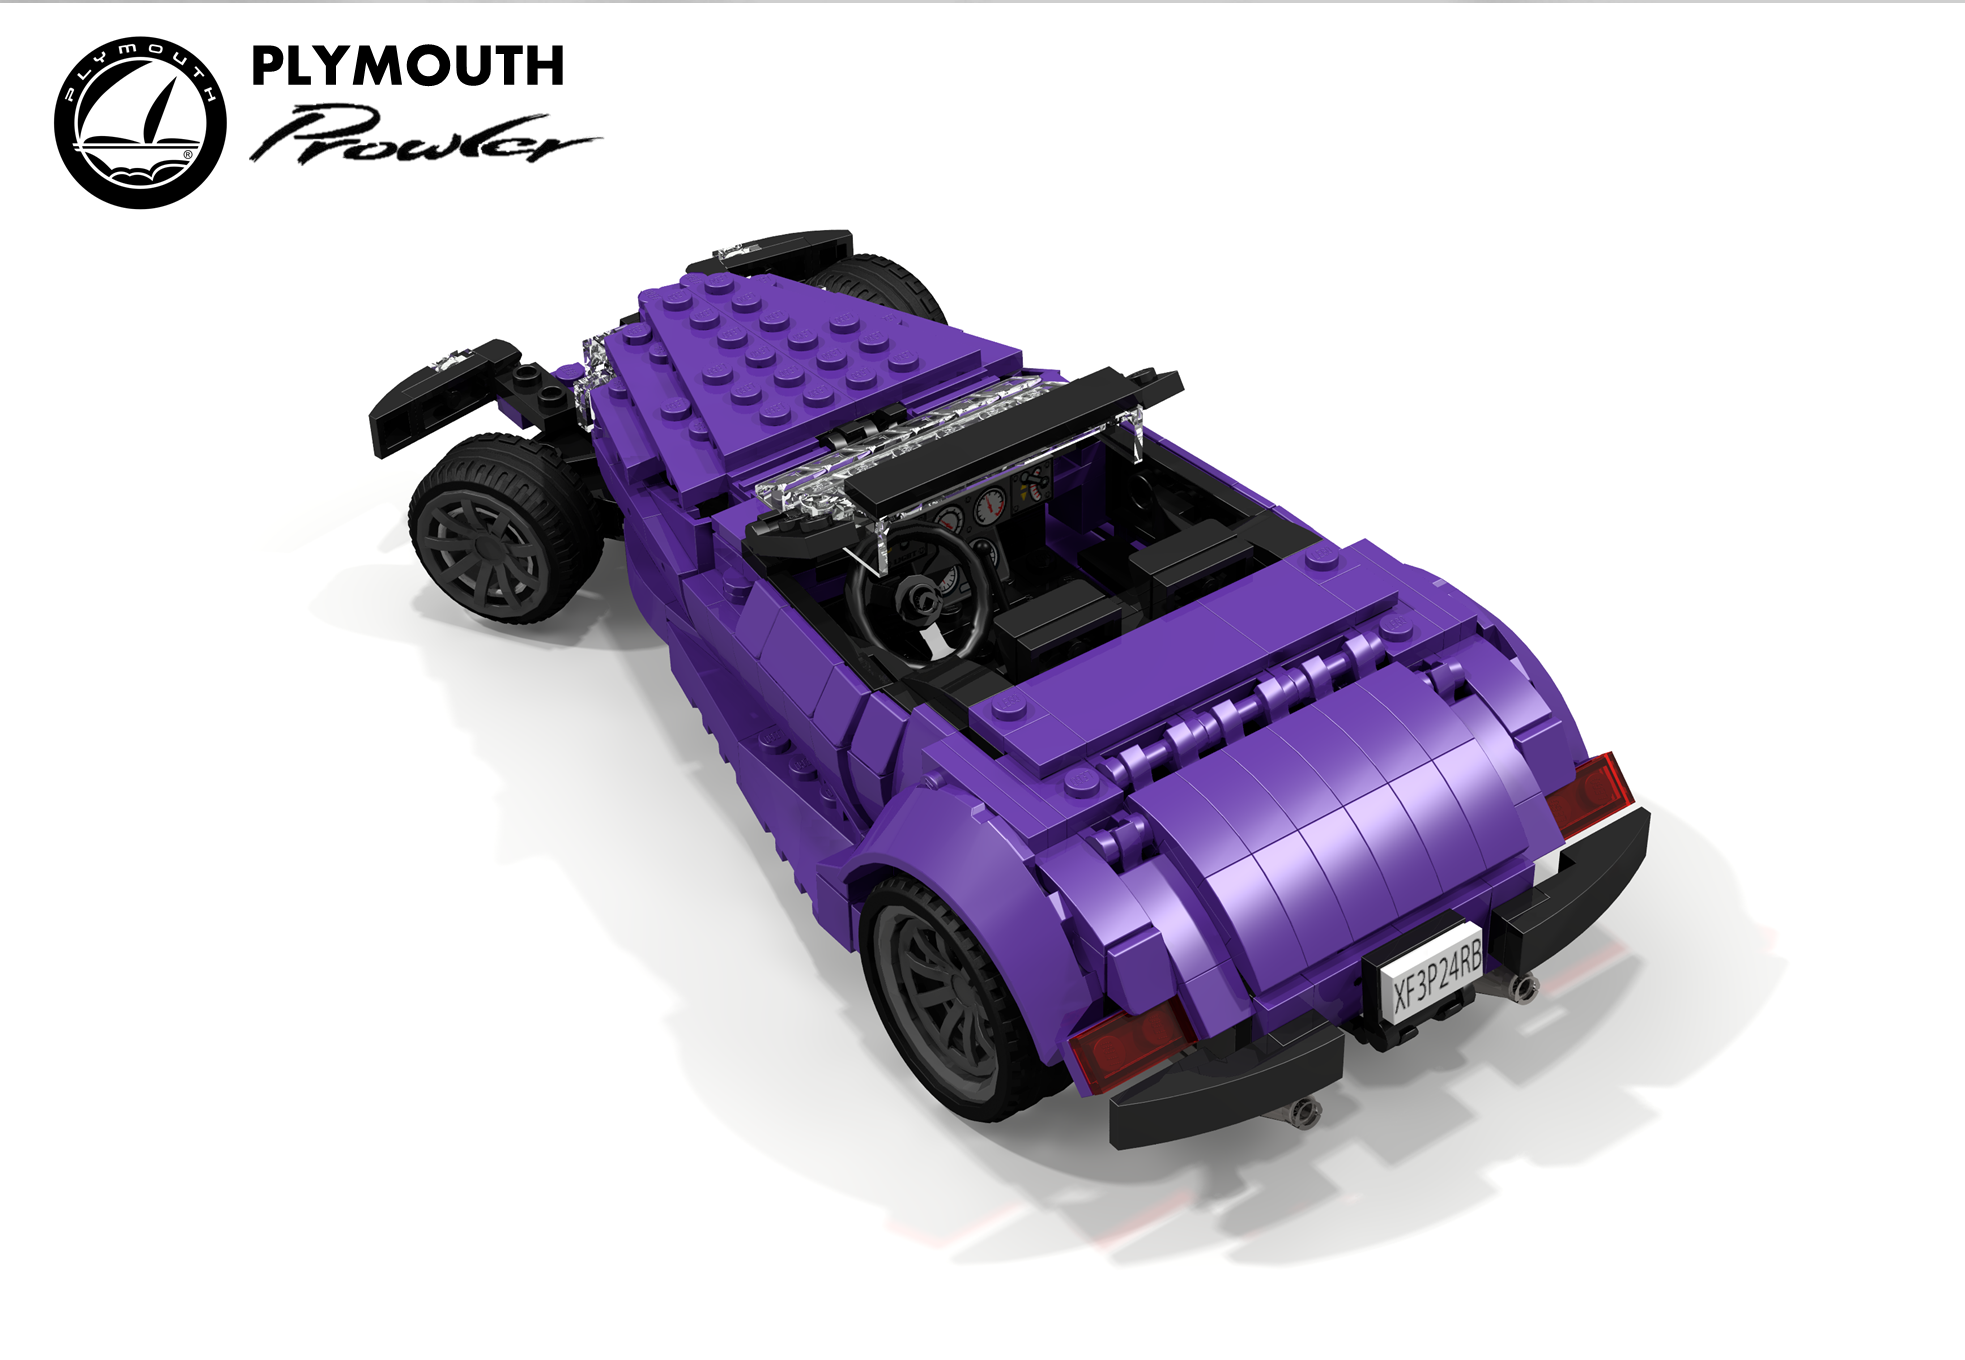 plymouth_prowler_06.png